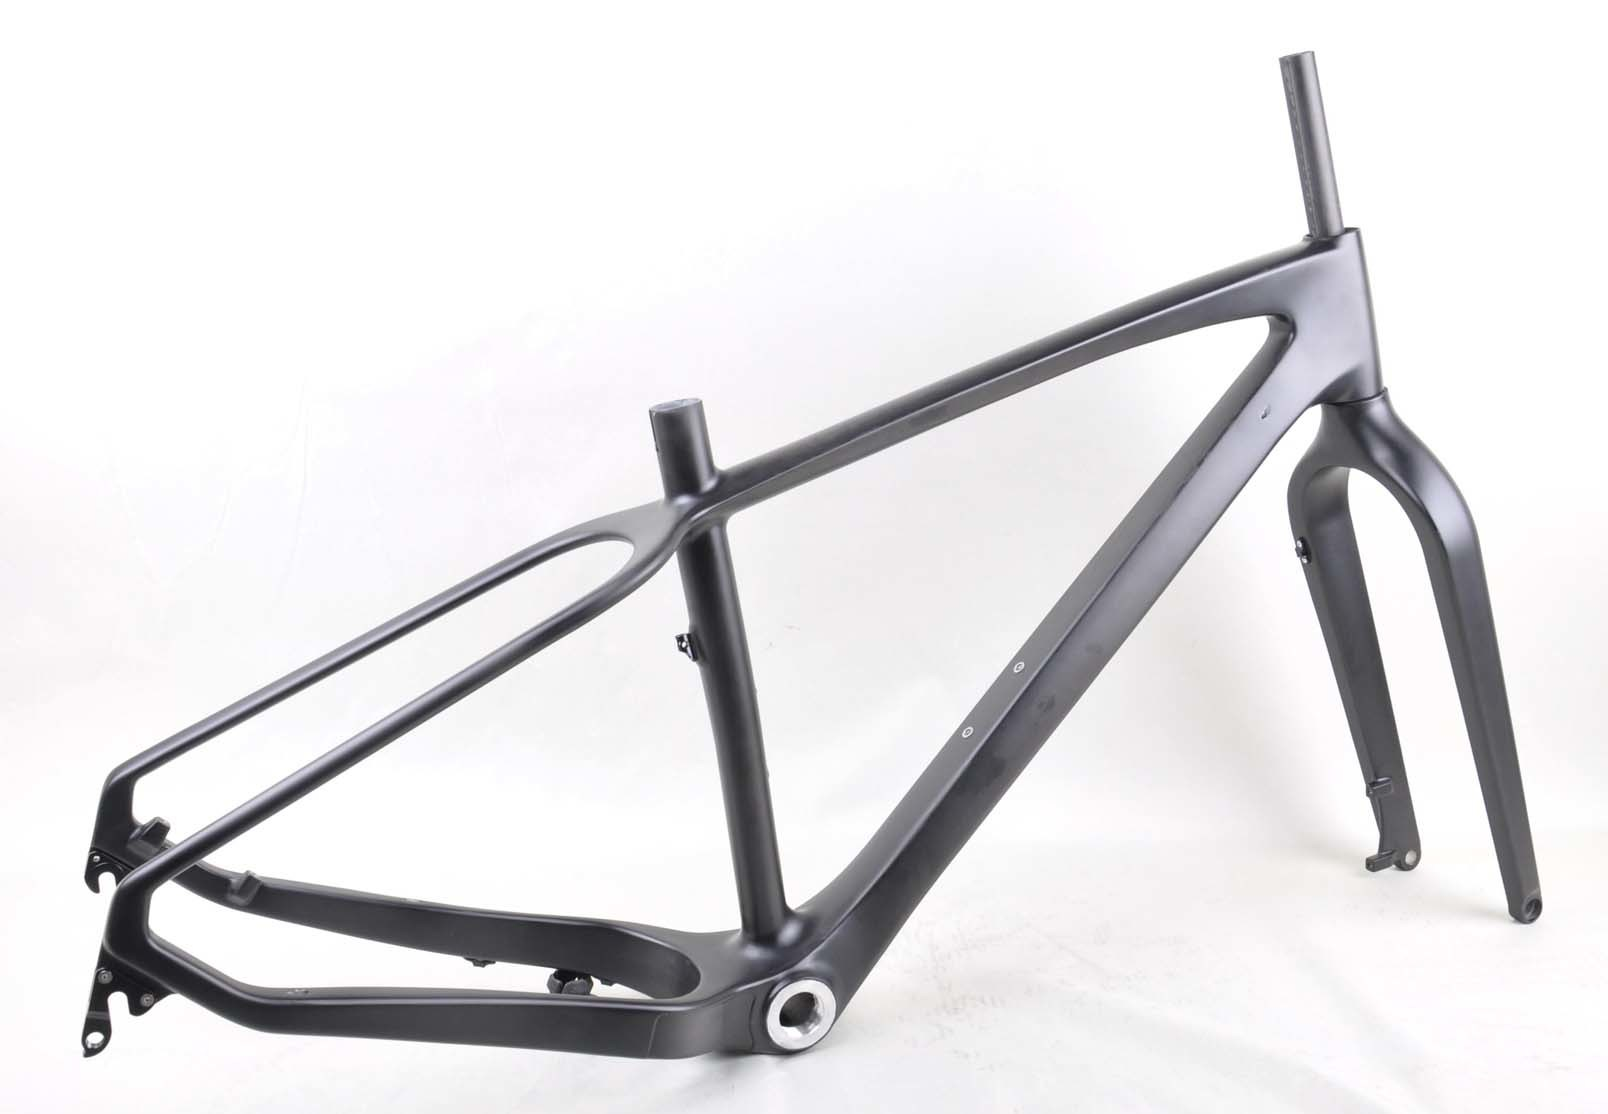 Carbon Bicycle, Fatbike Frame, Fat Bike China, Chinese Carbon Fiber ...